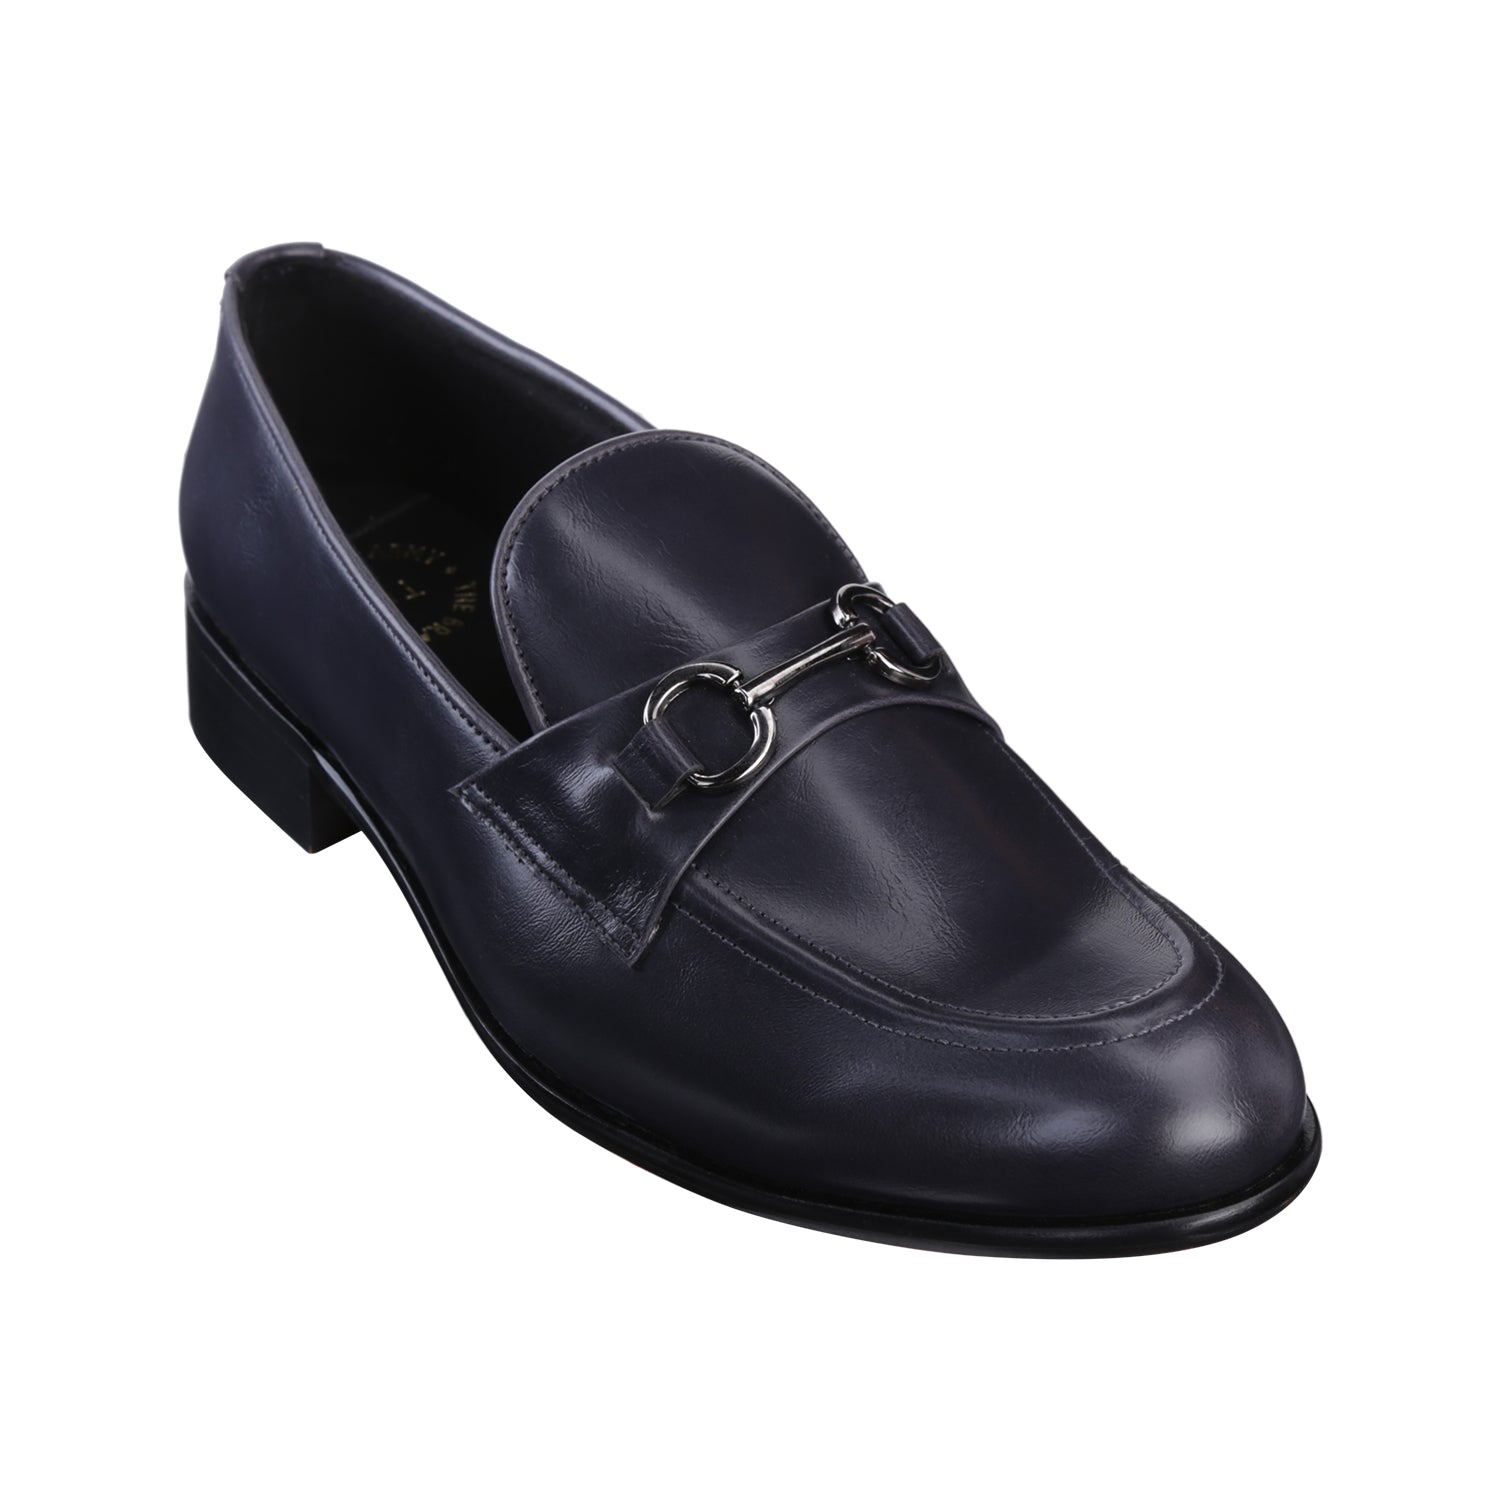 RUSSELL BLUE BUCKLE LOAFERS